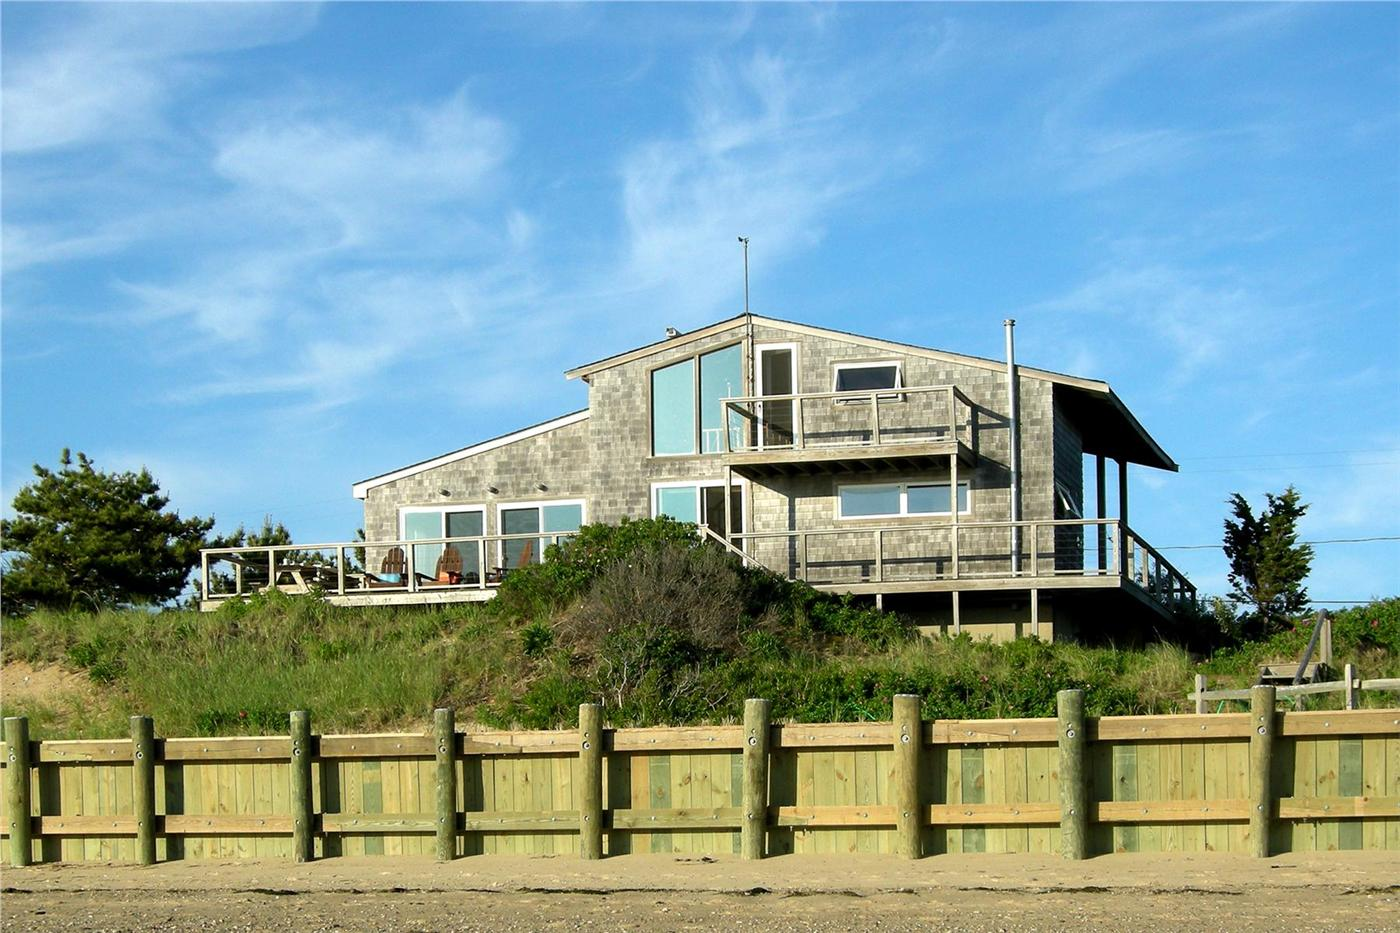 Eastham Vacation Al Home In Cape Cod Ma 02651 Waterfront On Bay North Of Cooks Brook Id 4756